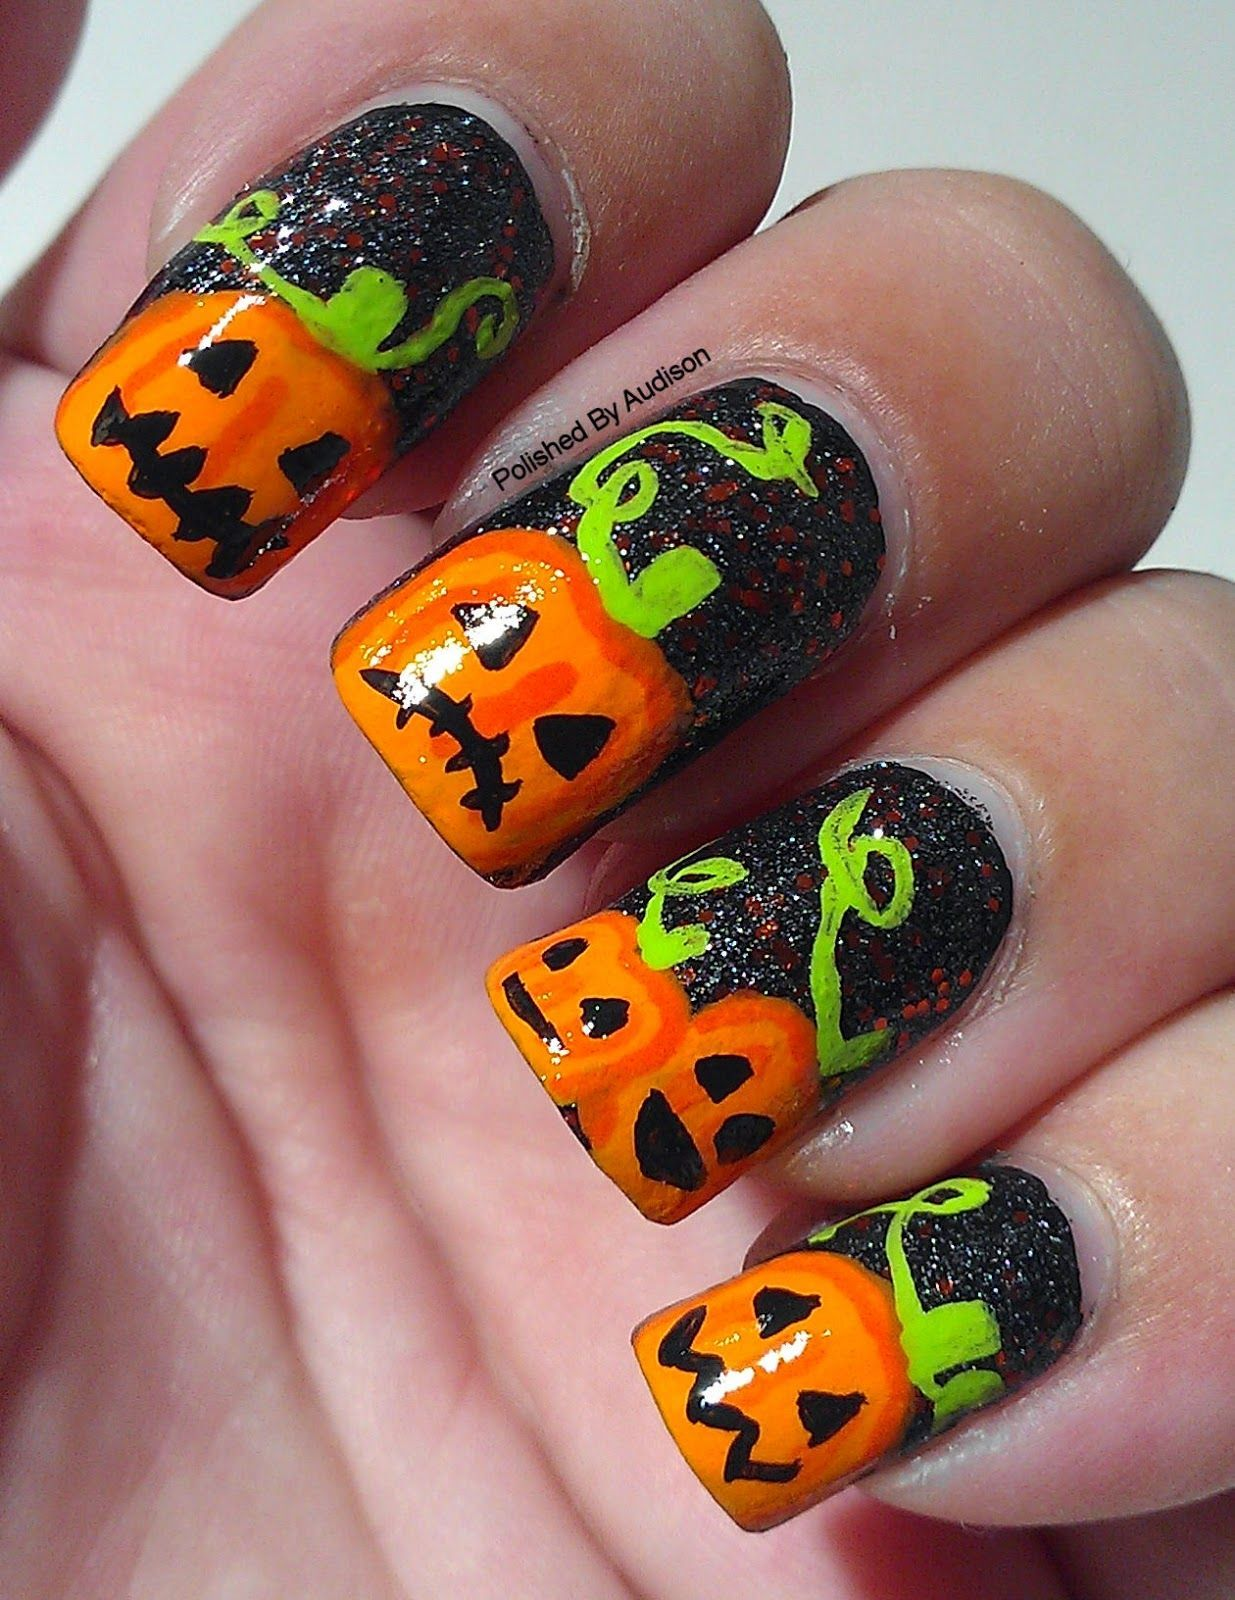 Polished By Audison 13 Days Of Halloween Pumpkin Nail Art